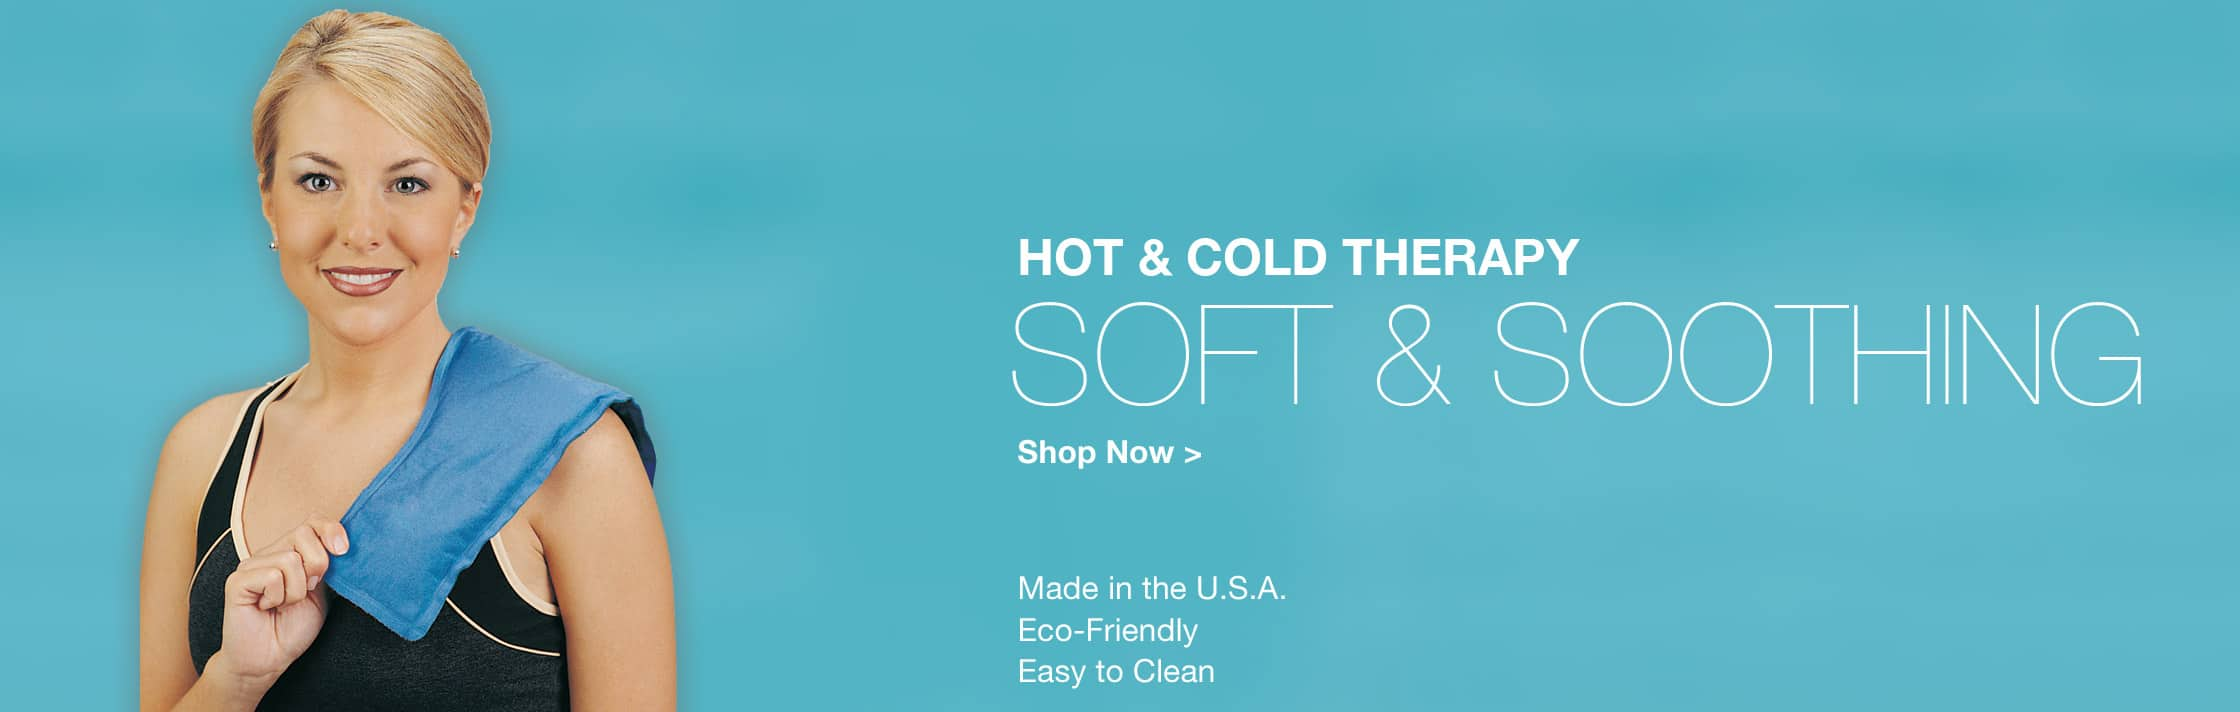 Soft & Soothing Hot & Cold Therapy